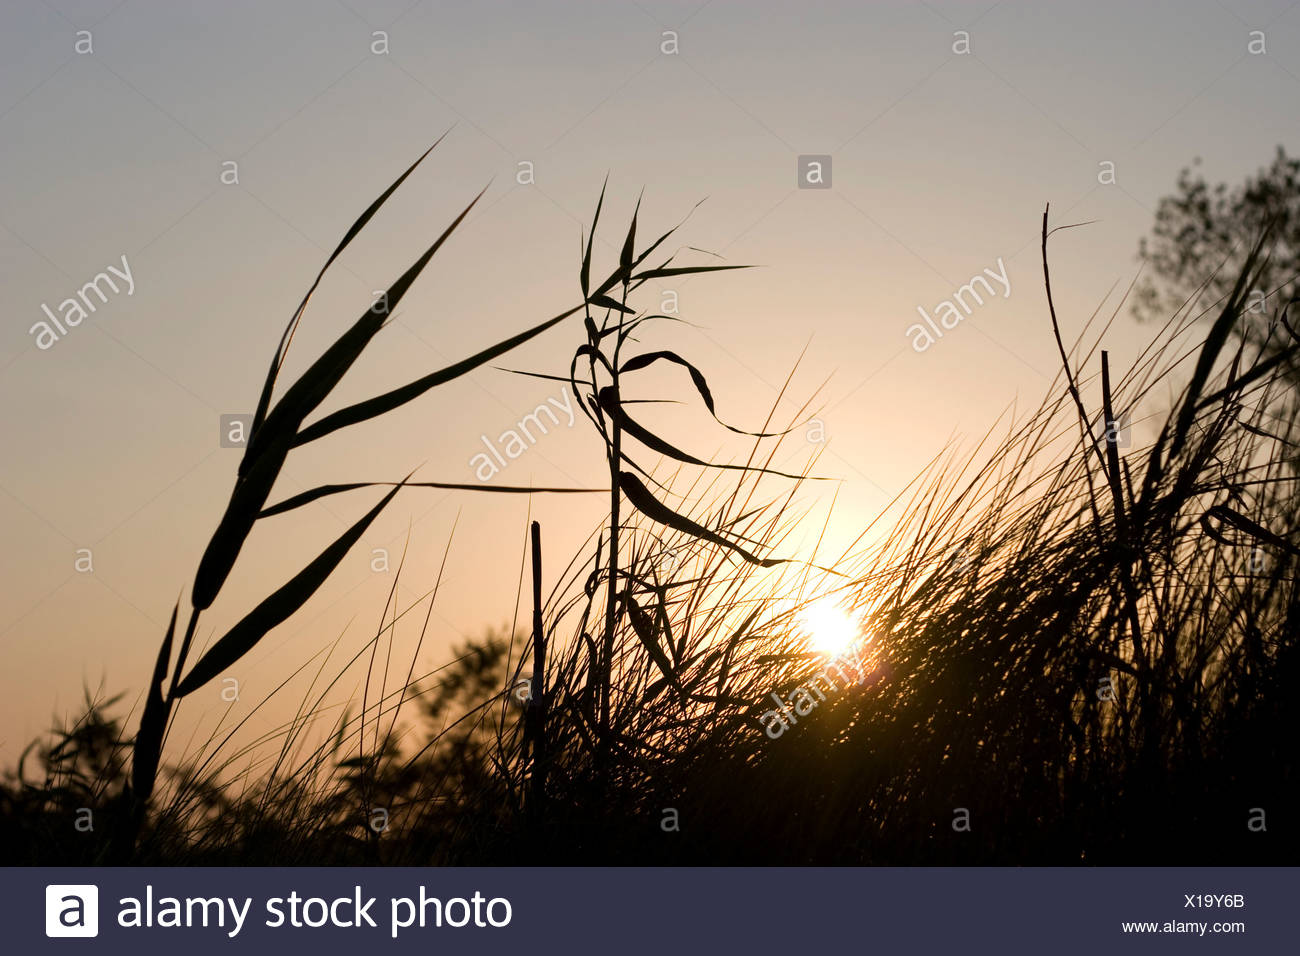 Reeds in the evening sun - Stock Image